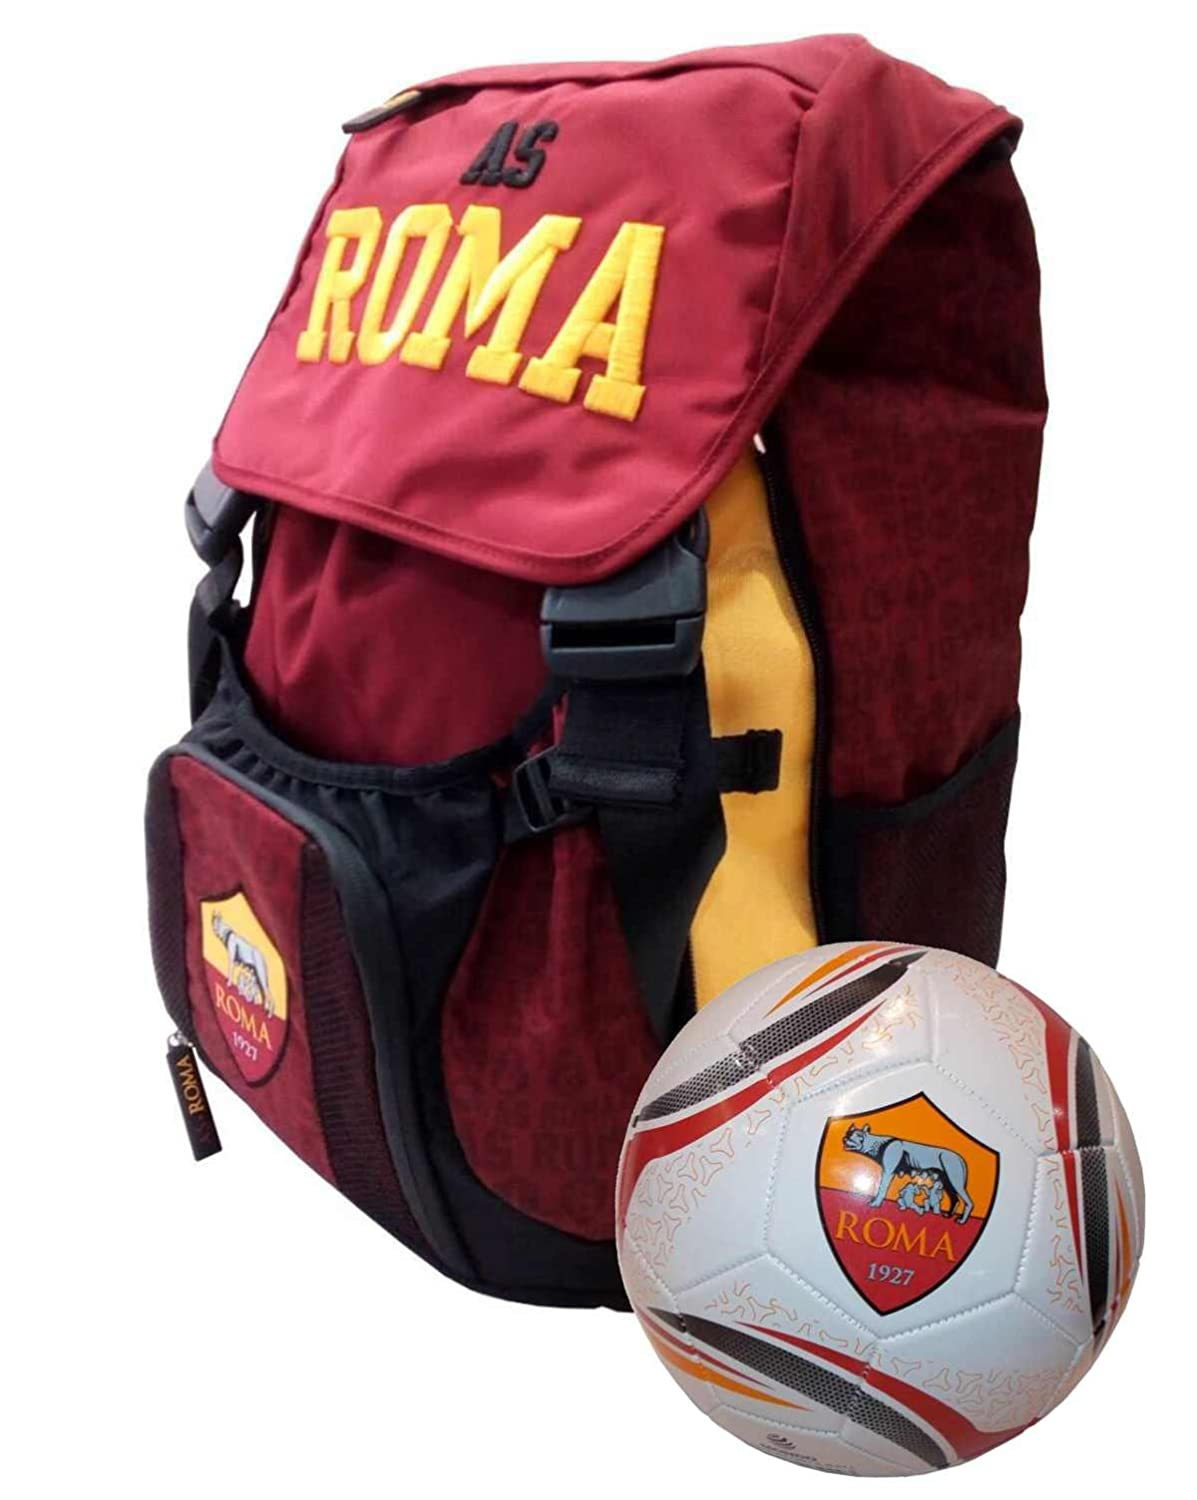 as Roma 1927 - Mochila Extensible Escolar + balón de Regalo ...